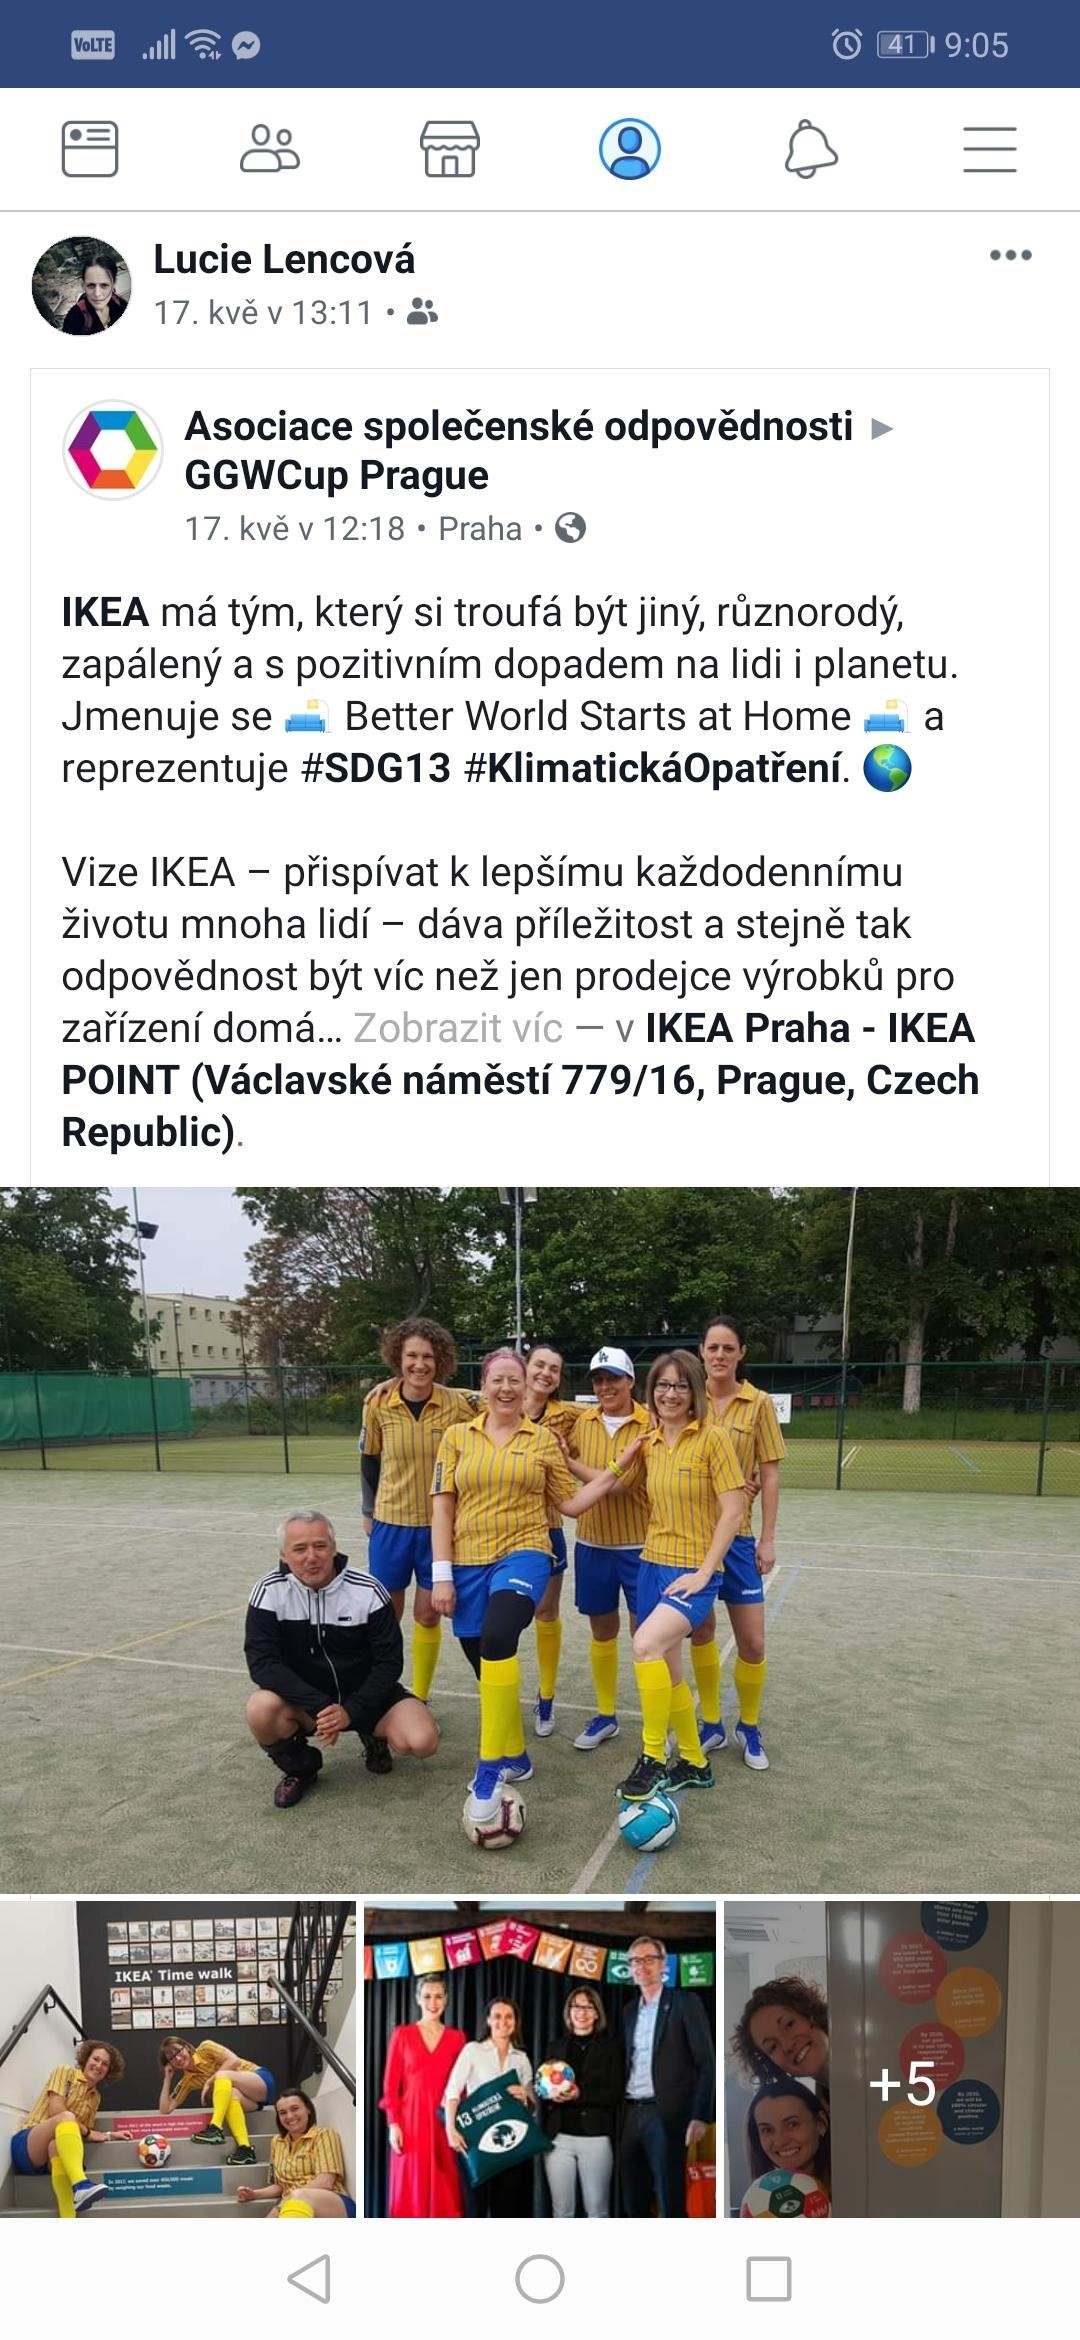 GGWCup Prague 2019 Lucka L.jpg